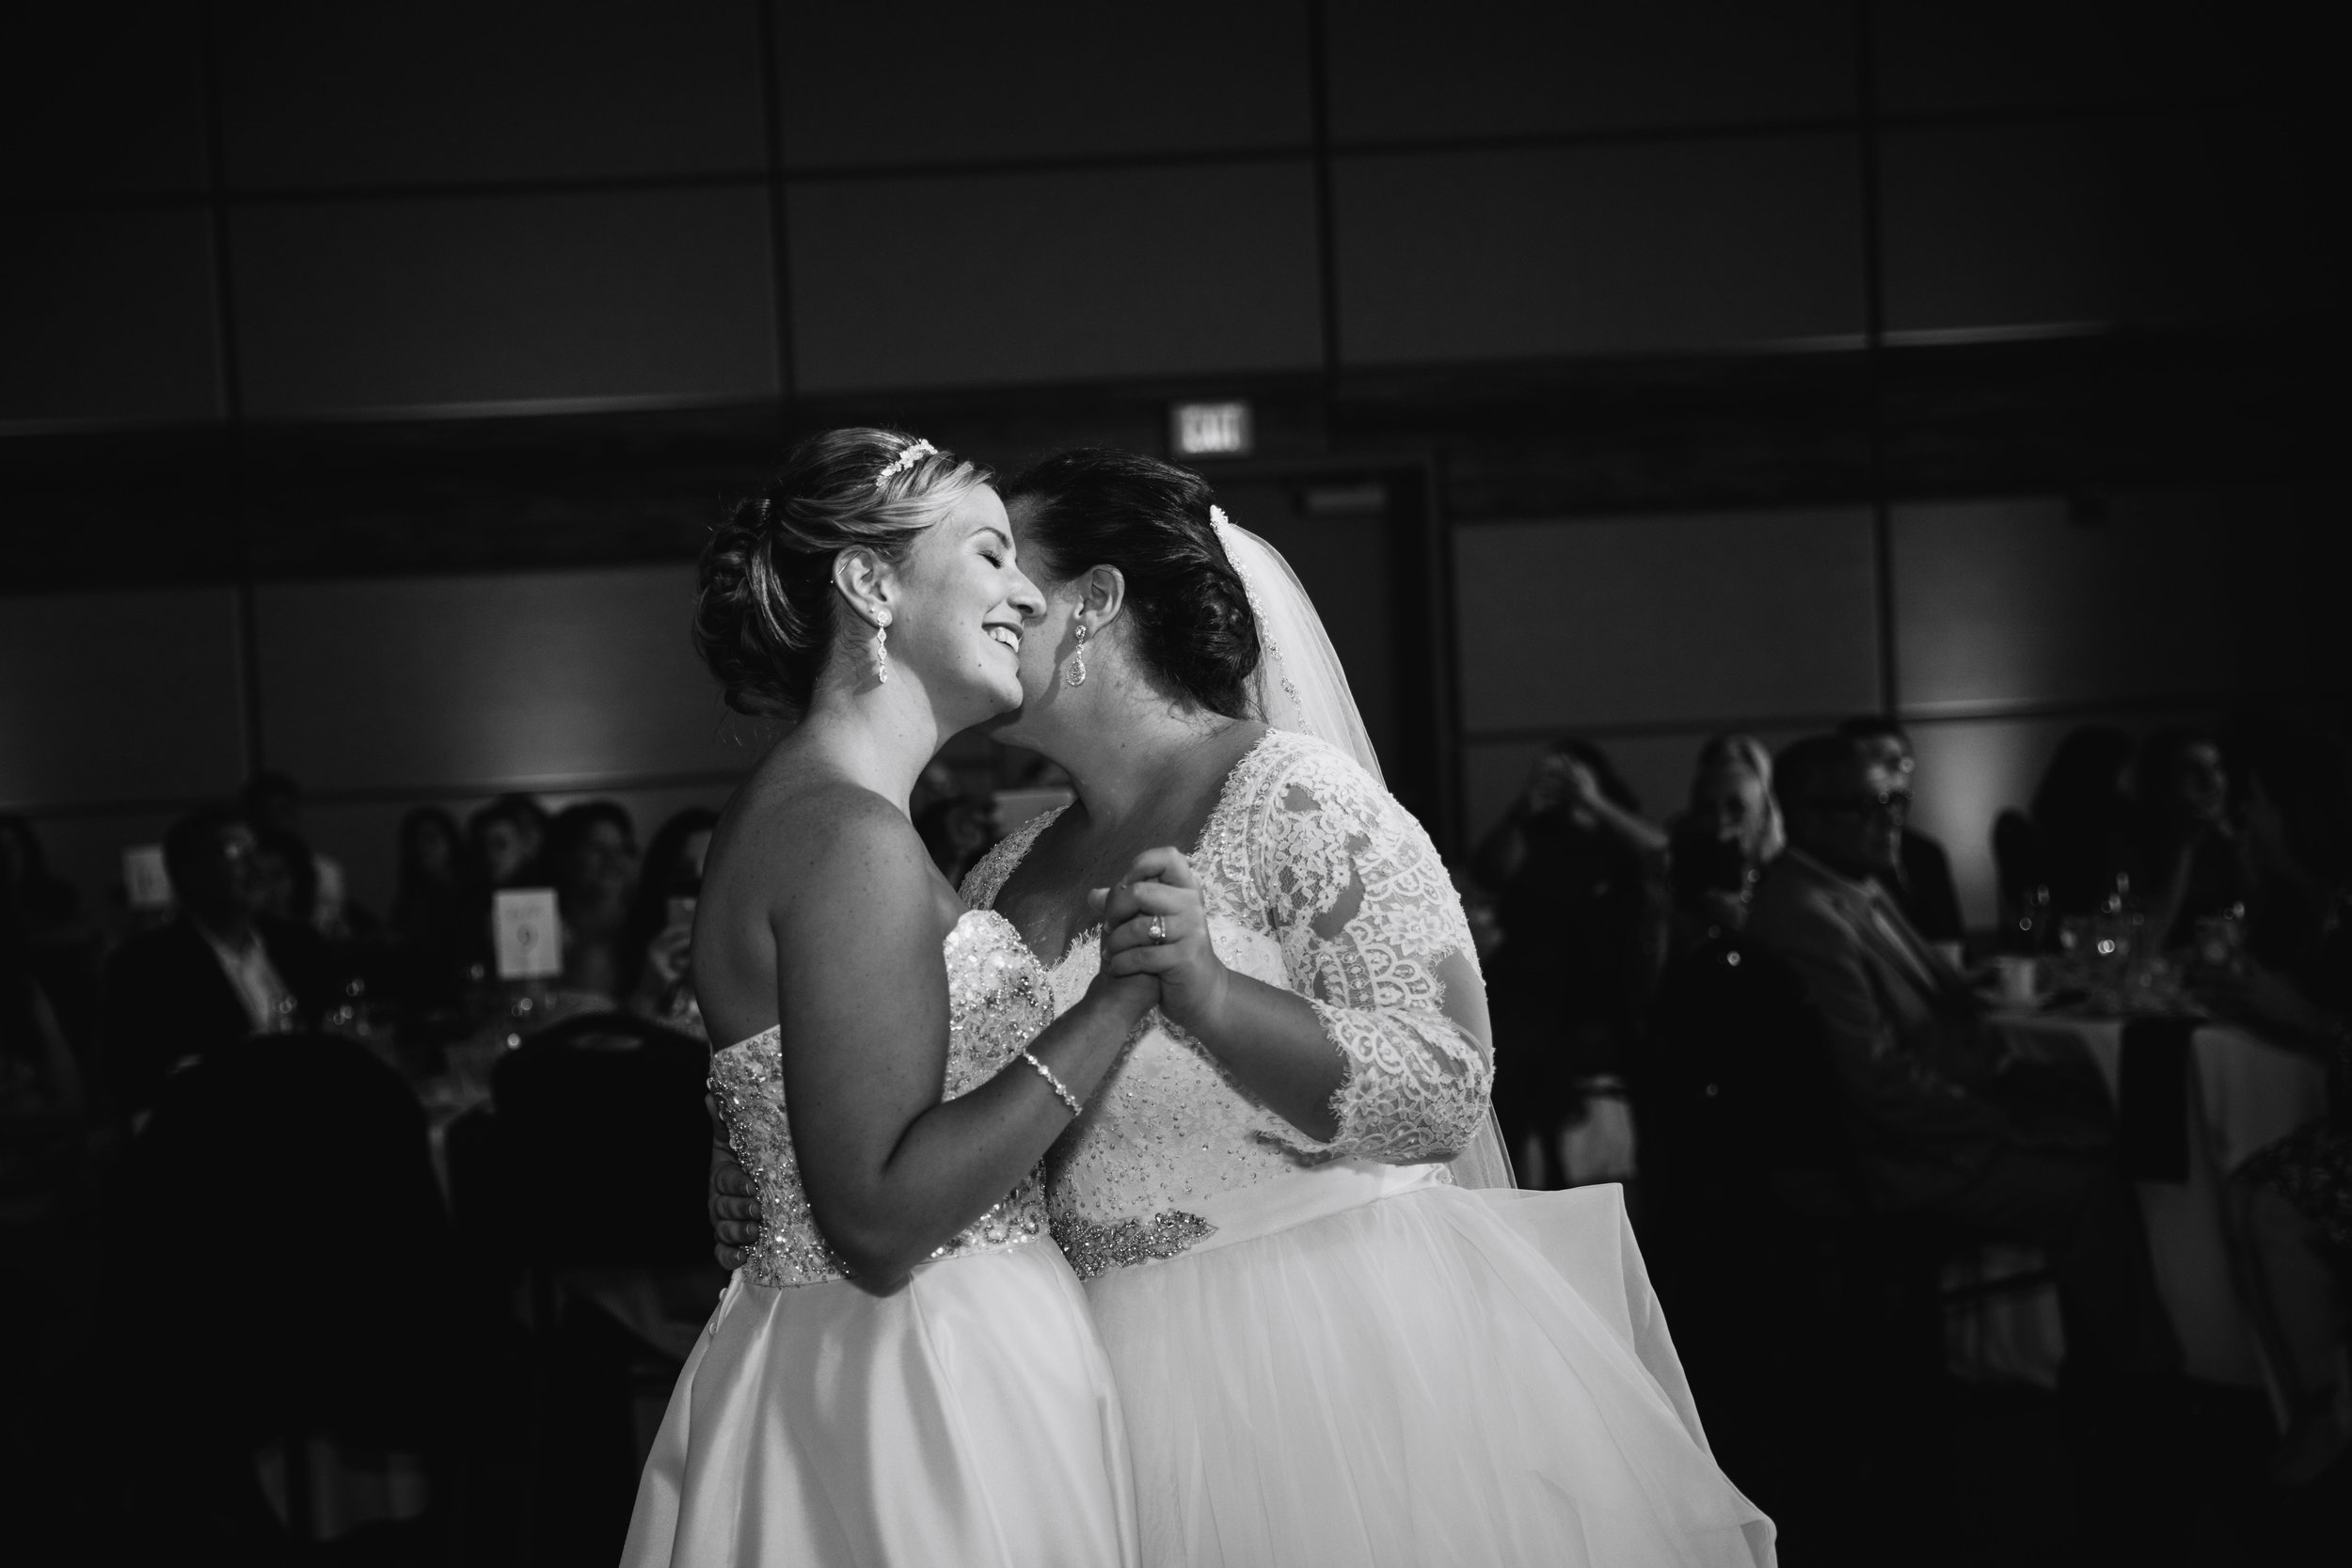 Kim and Dominique  - Cape May Convention Hall Wedding - 136.jpg